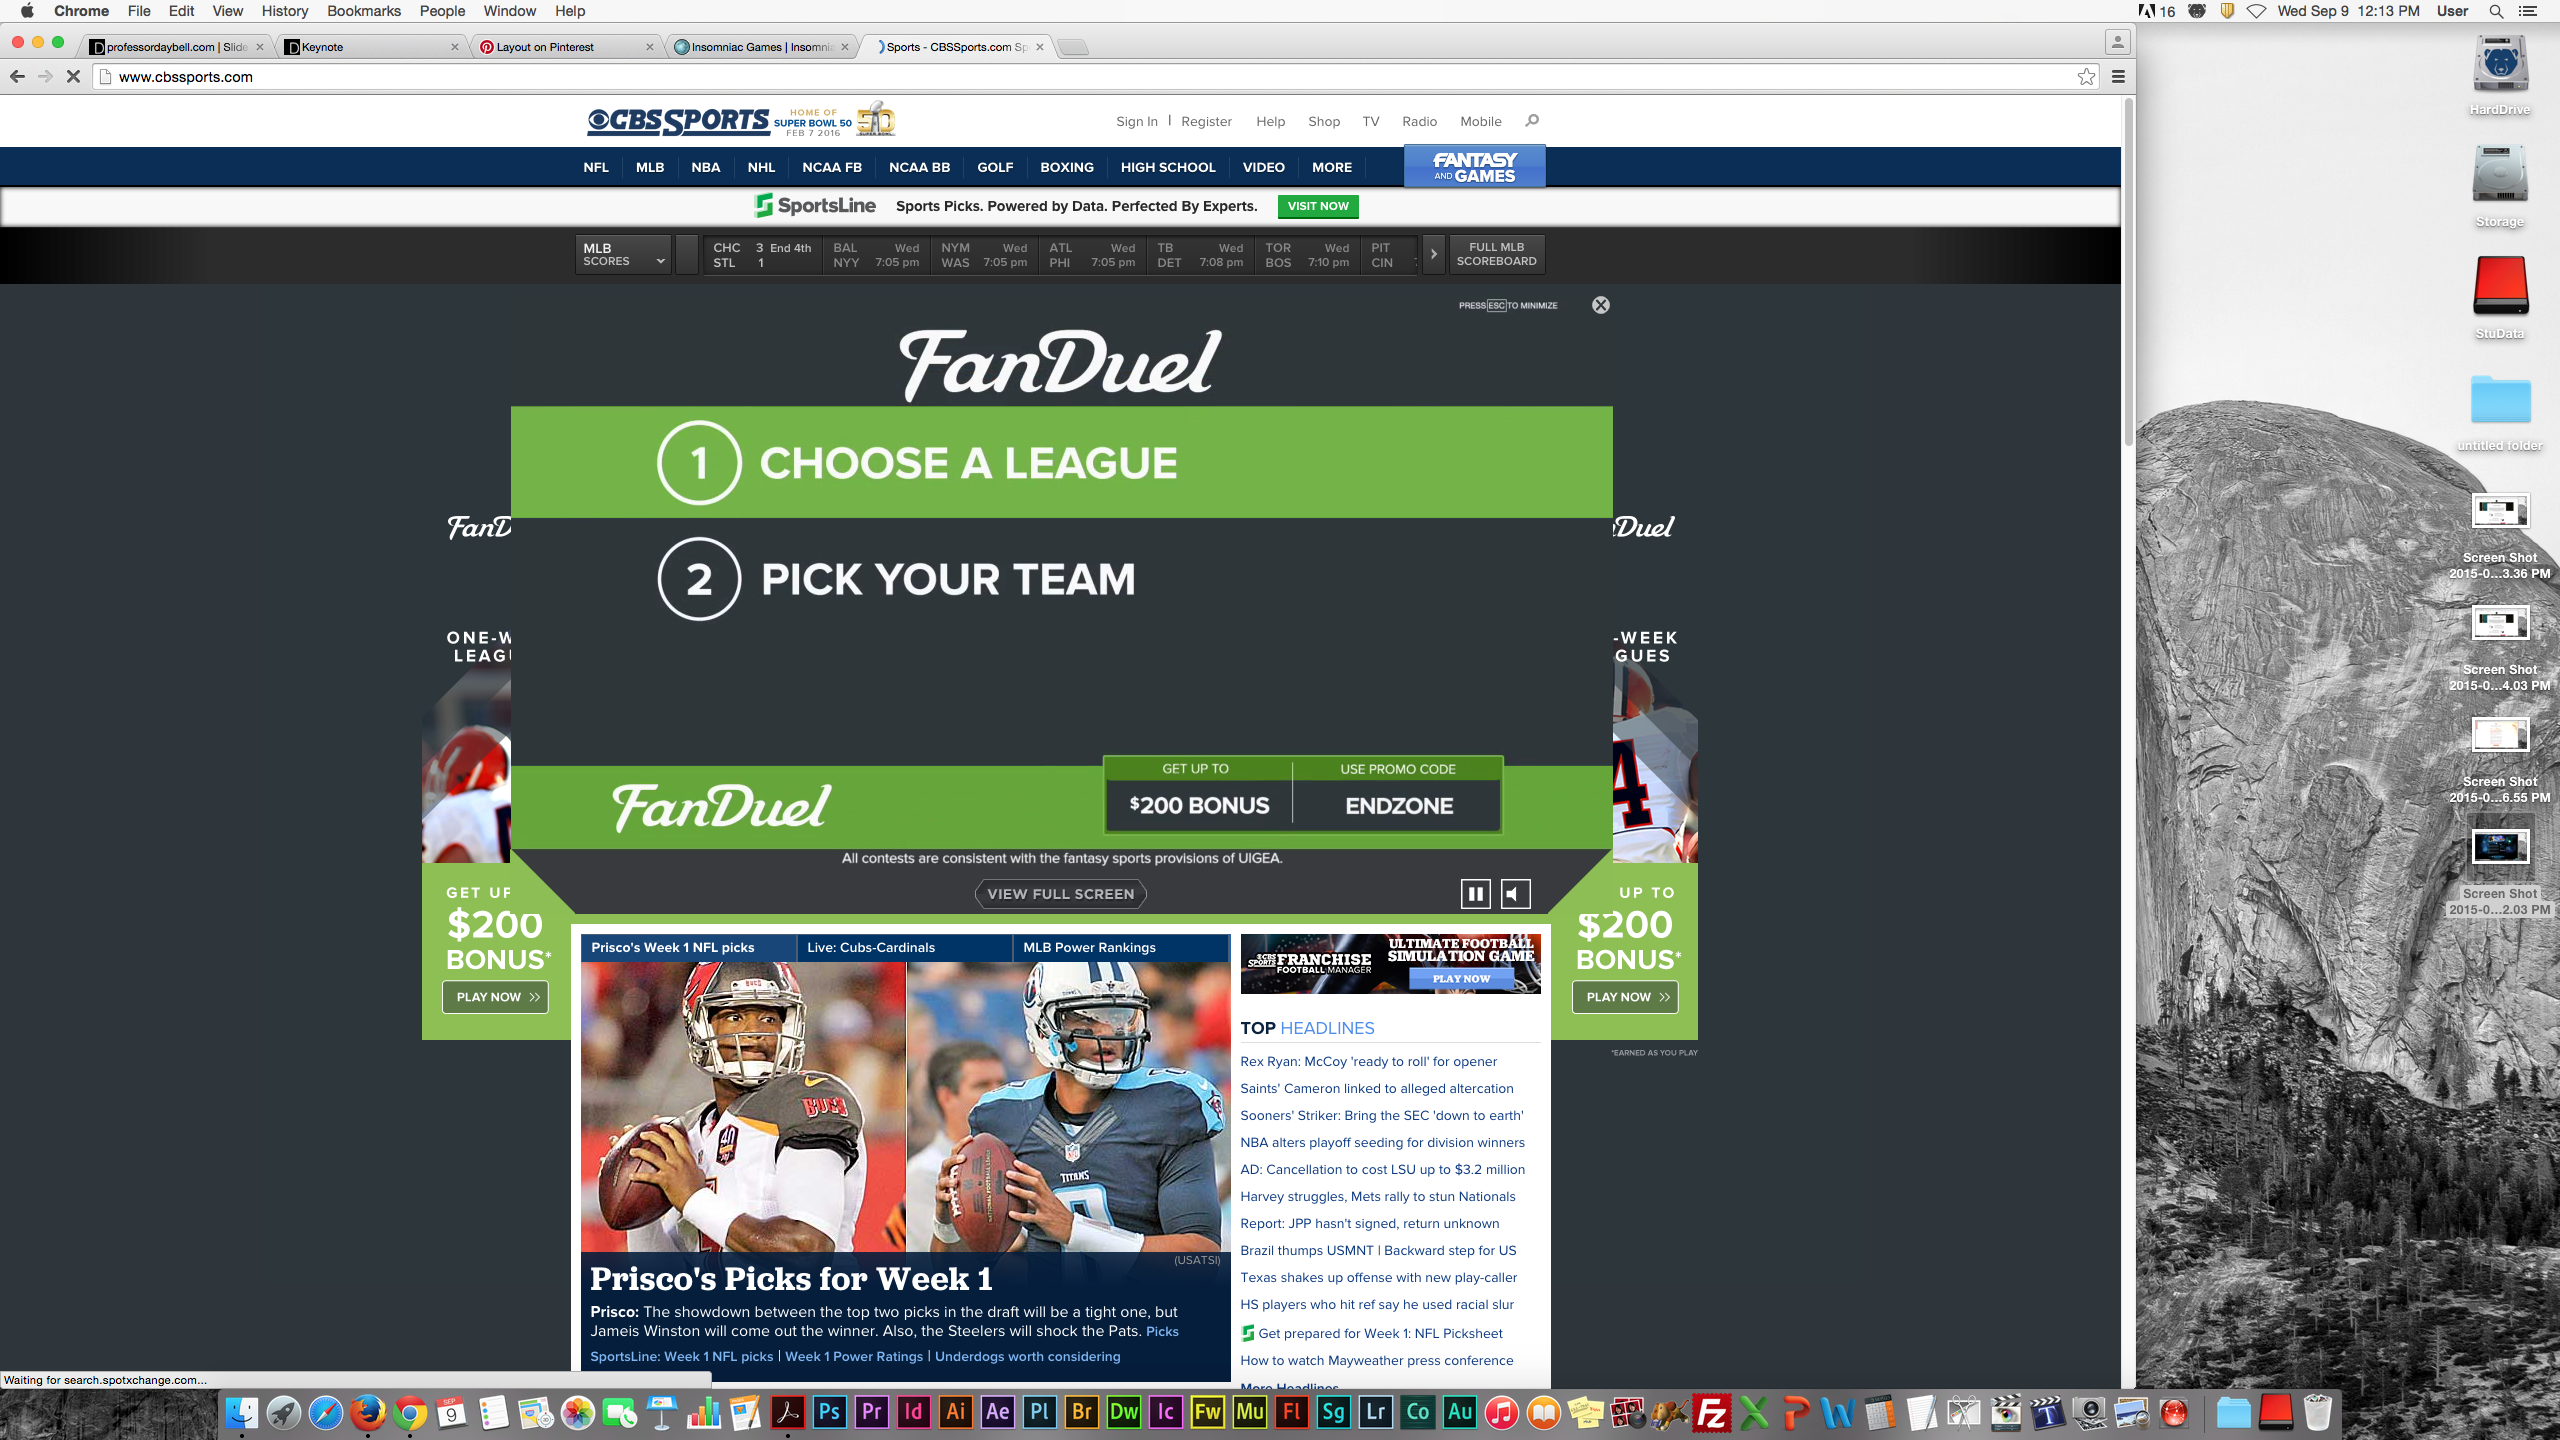 Sports Cbs sports, Fantasy games, Sports news